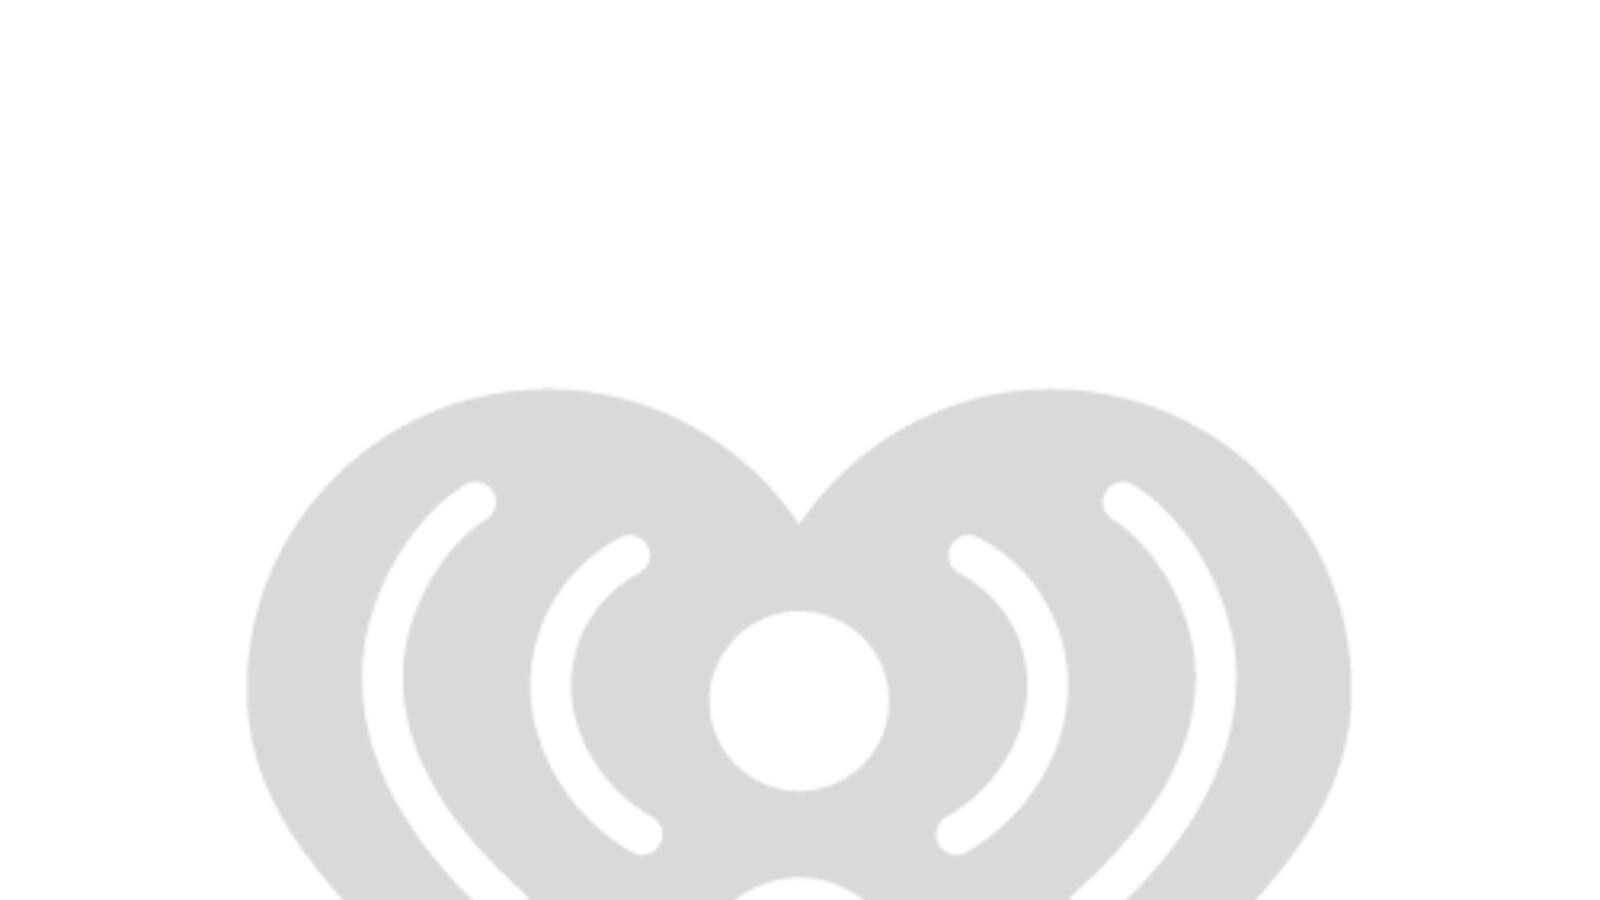 Oasis Share 'Champagne Supernova' Performance From Upcoming Documentary